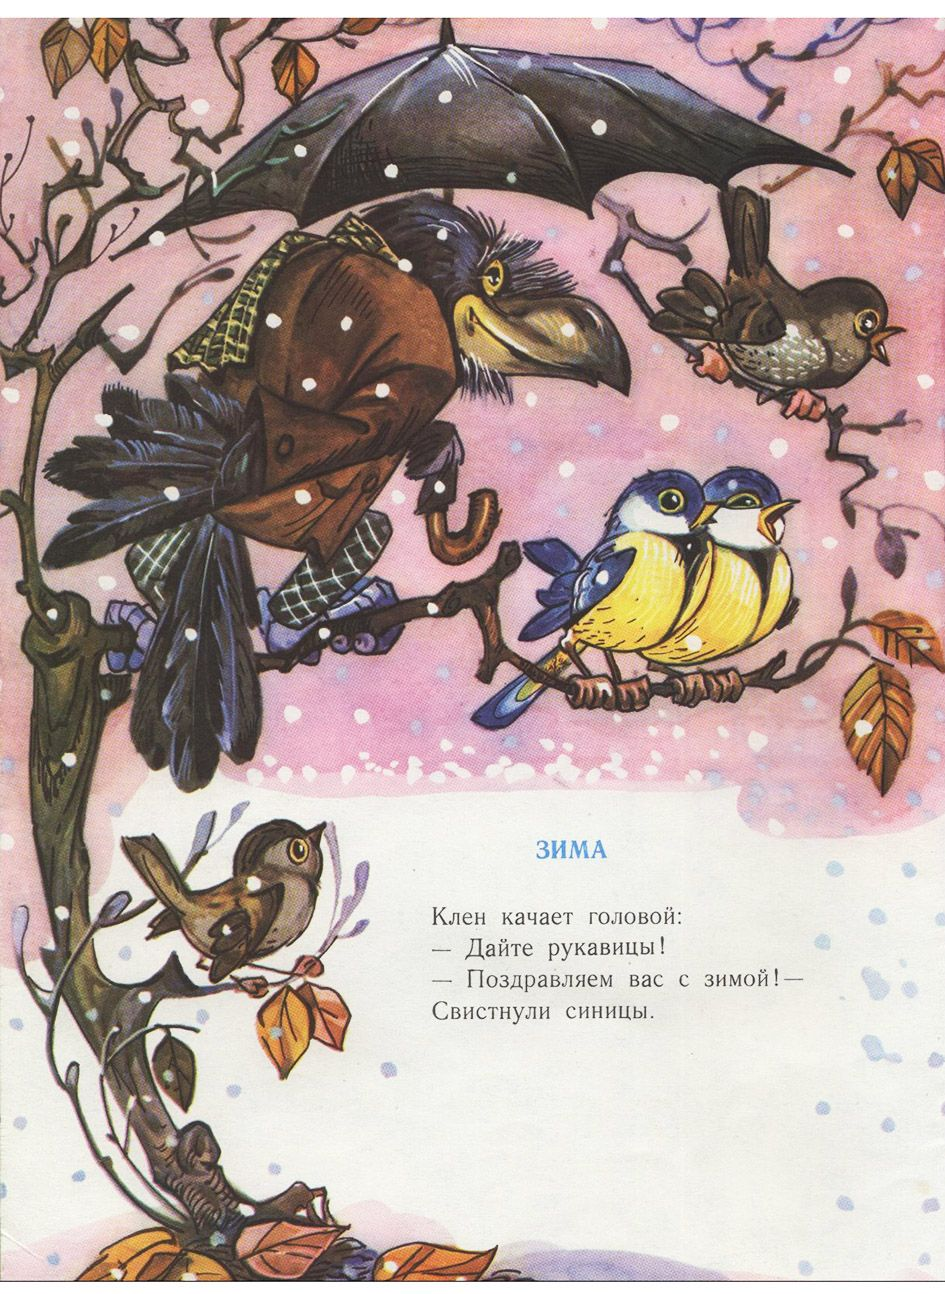 Pin by Нина on Стишки in 2020 Magazines for kids, Kids